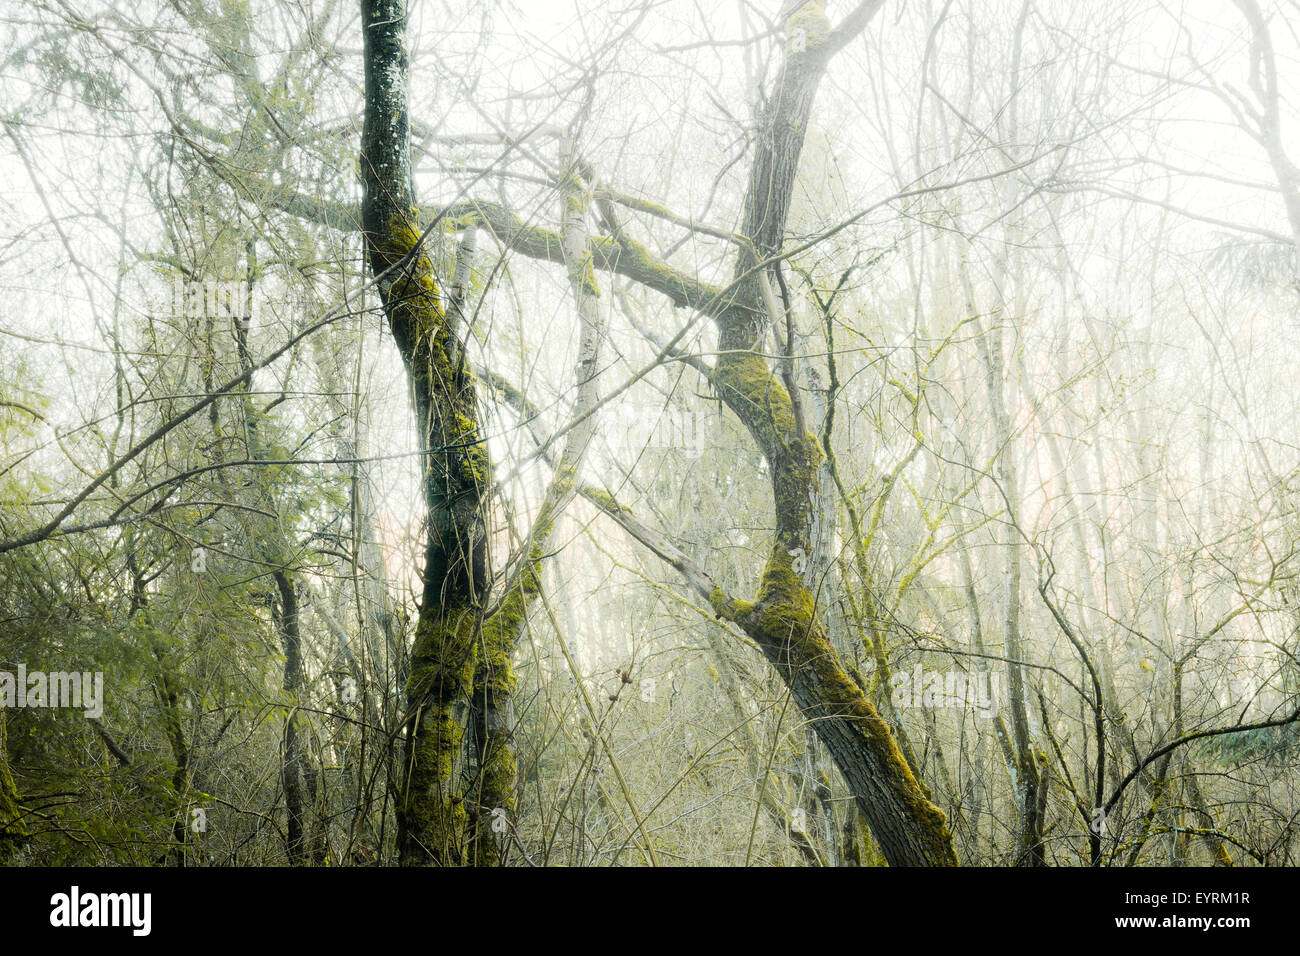 Wood, tree, moss, mystical, gloomy, green, morning, fog, old, creating, Germany, Bavaria - Stock Image